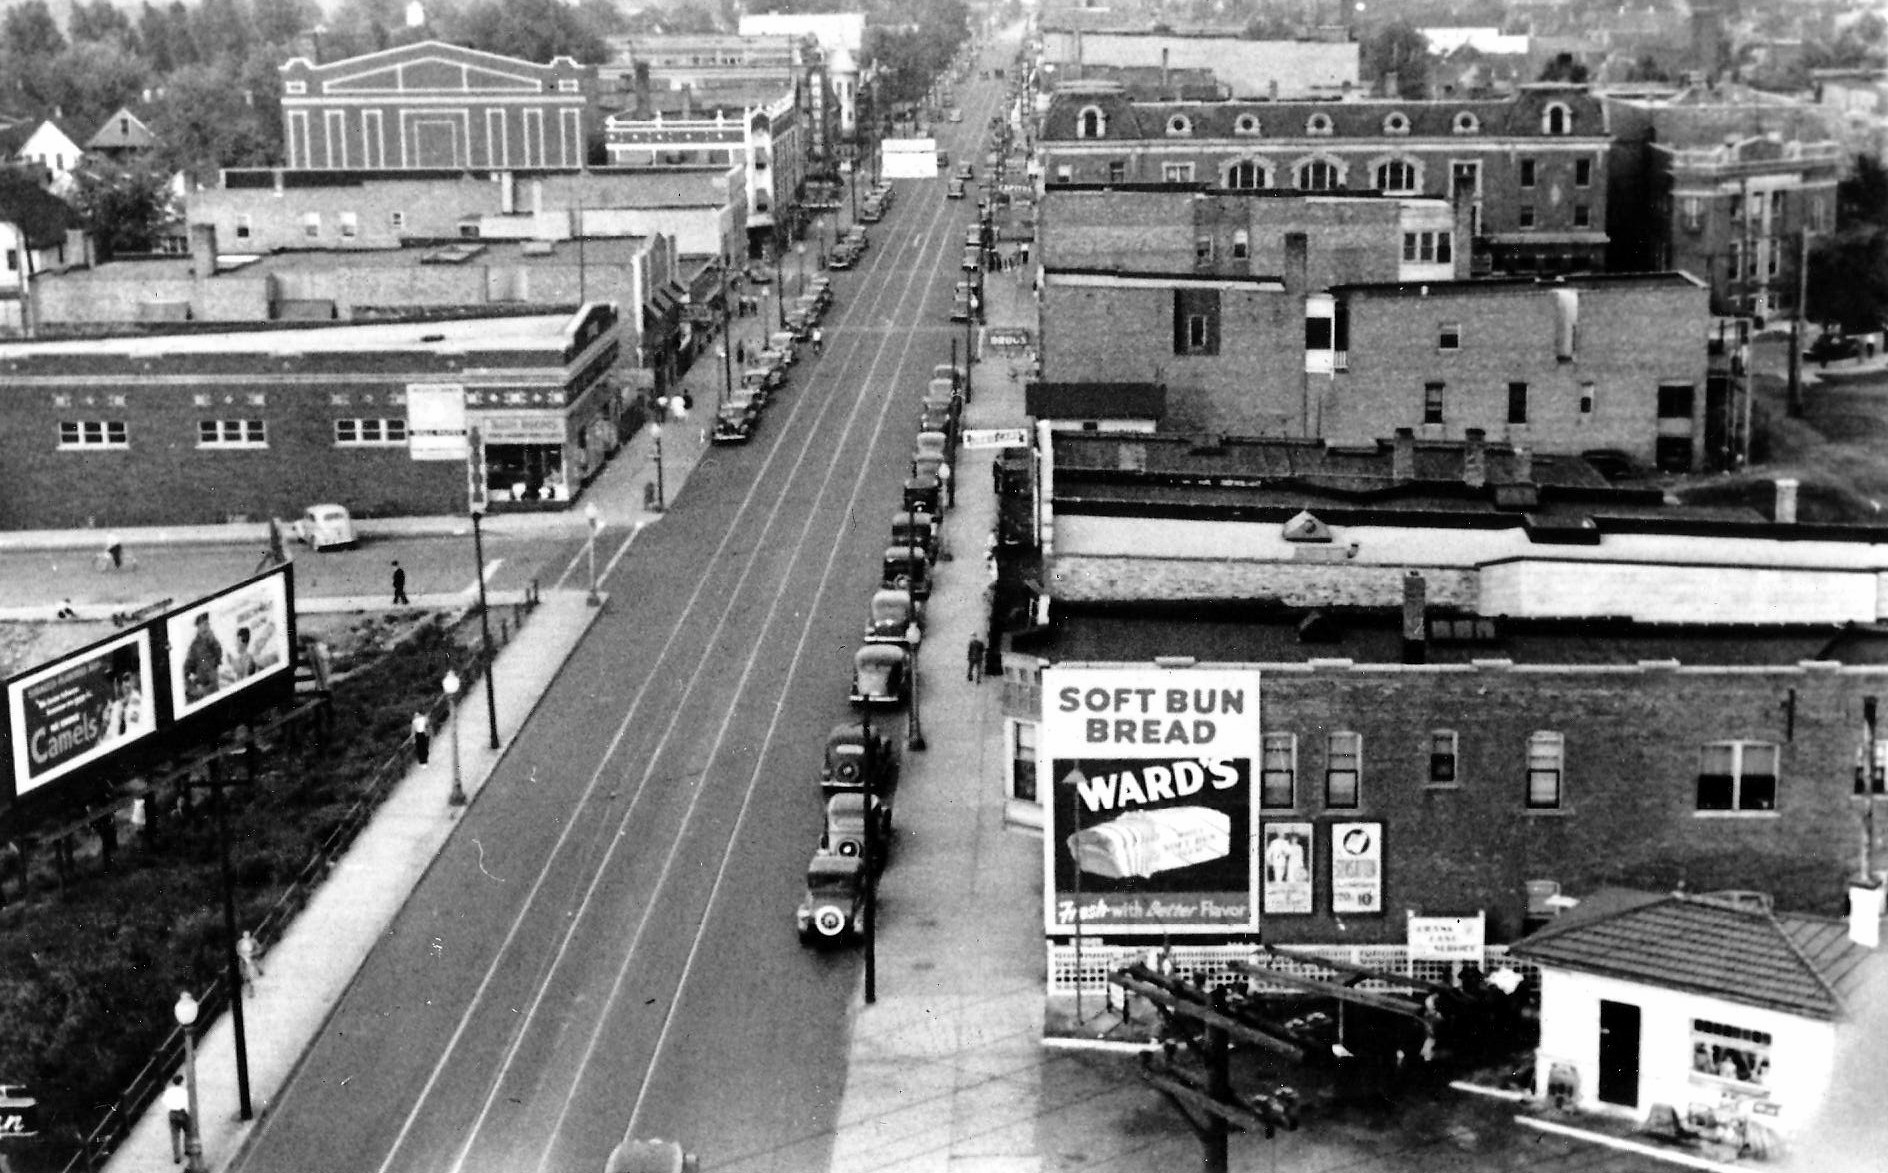 The Central State Bank Building offered birds eye views of Indianapolis Boulevard and 119th Street. This is how 119th Street looked from the top floor of the bank building, probably in the early 1930s.